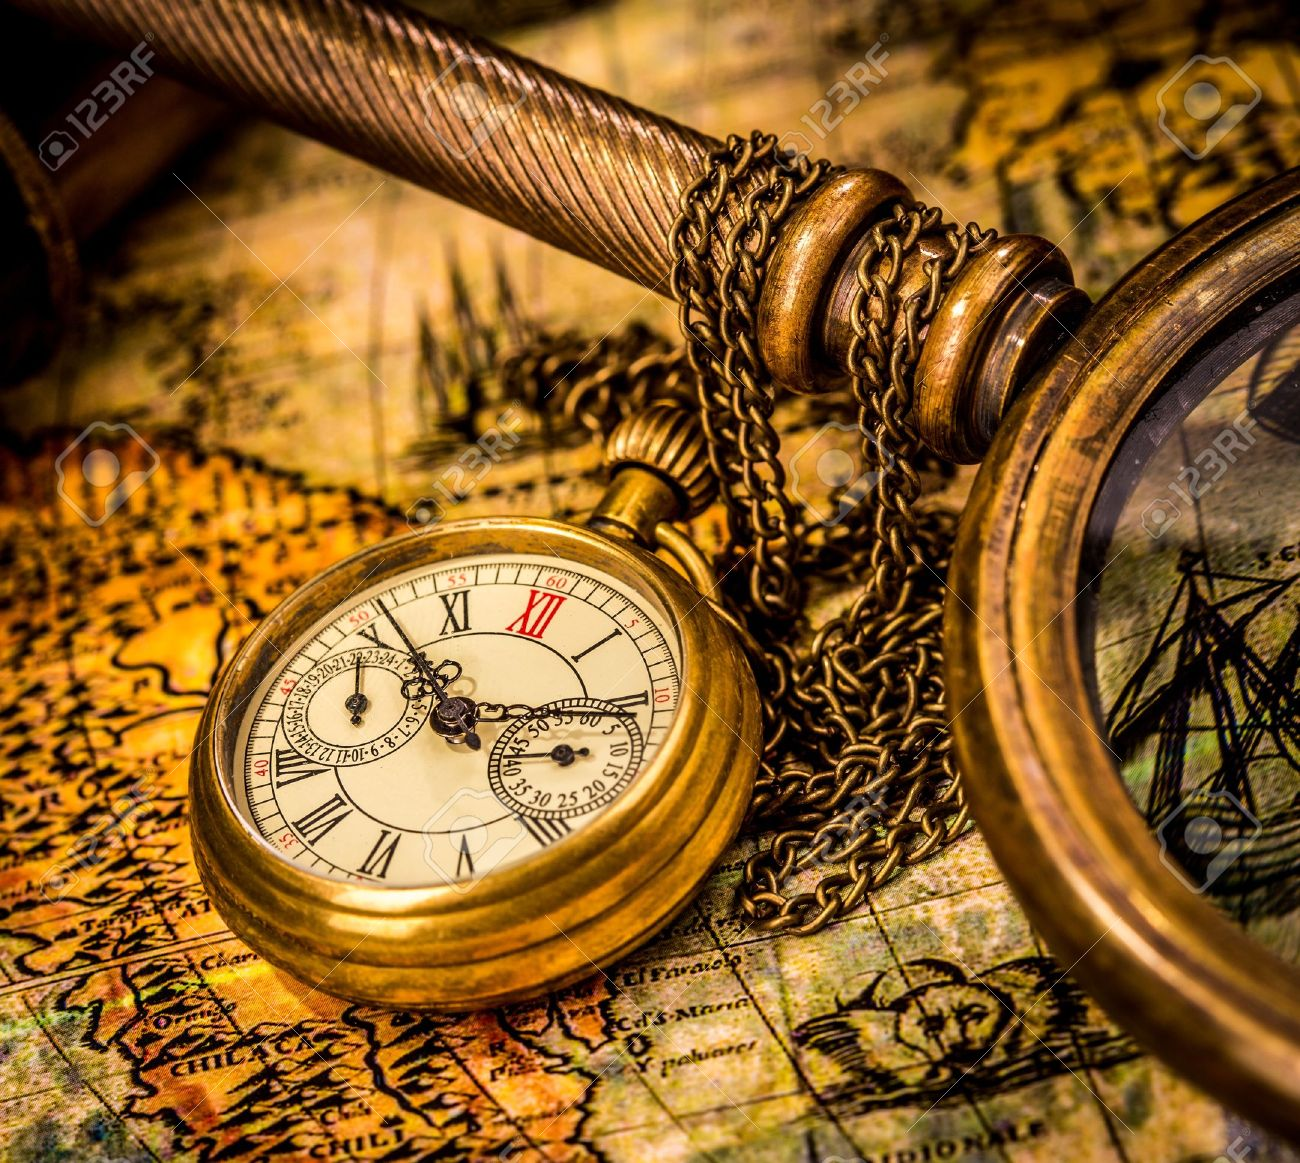 Vintage Still Life Antique Pocket Watch Stock Photo Picture And